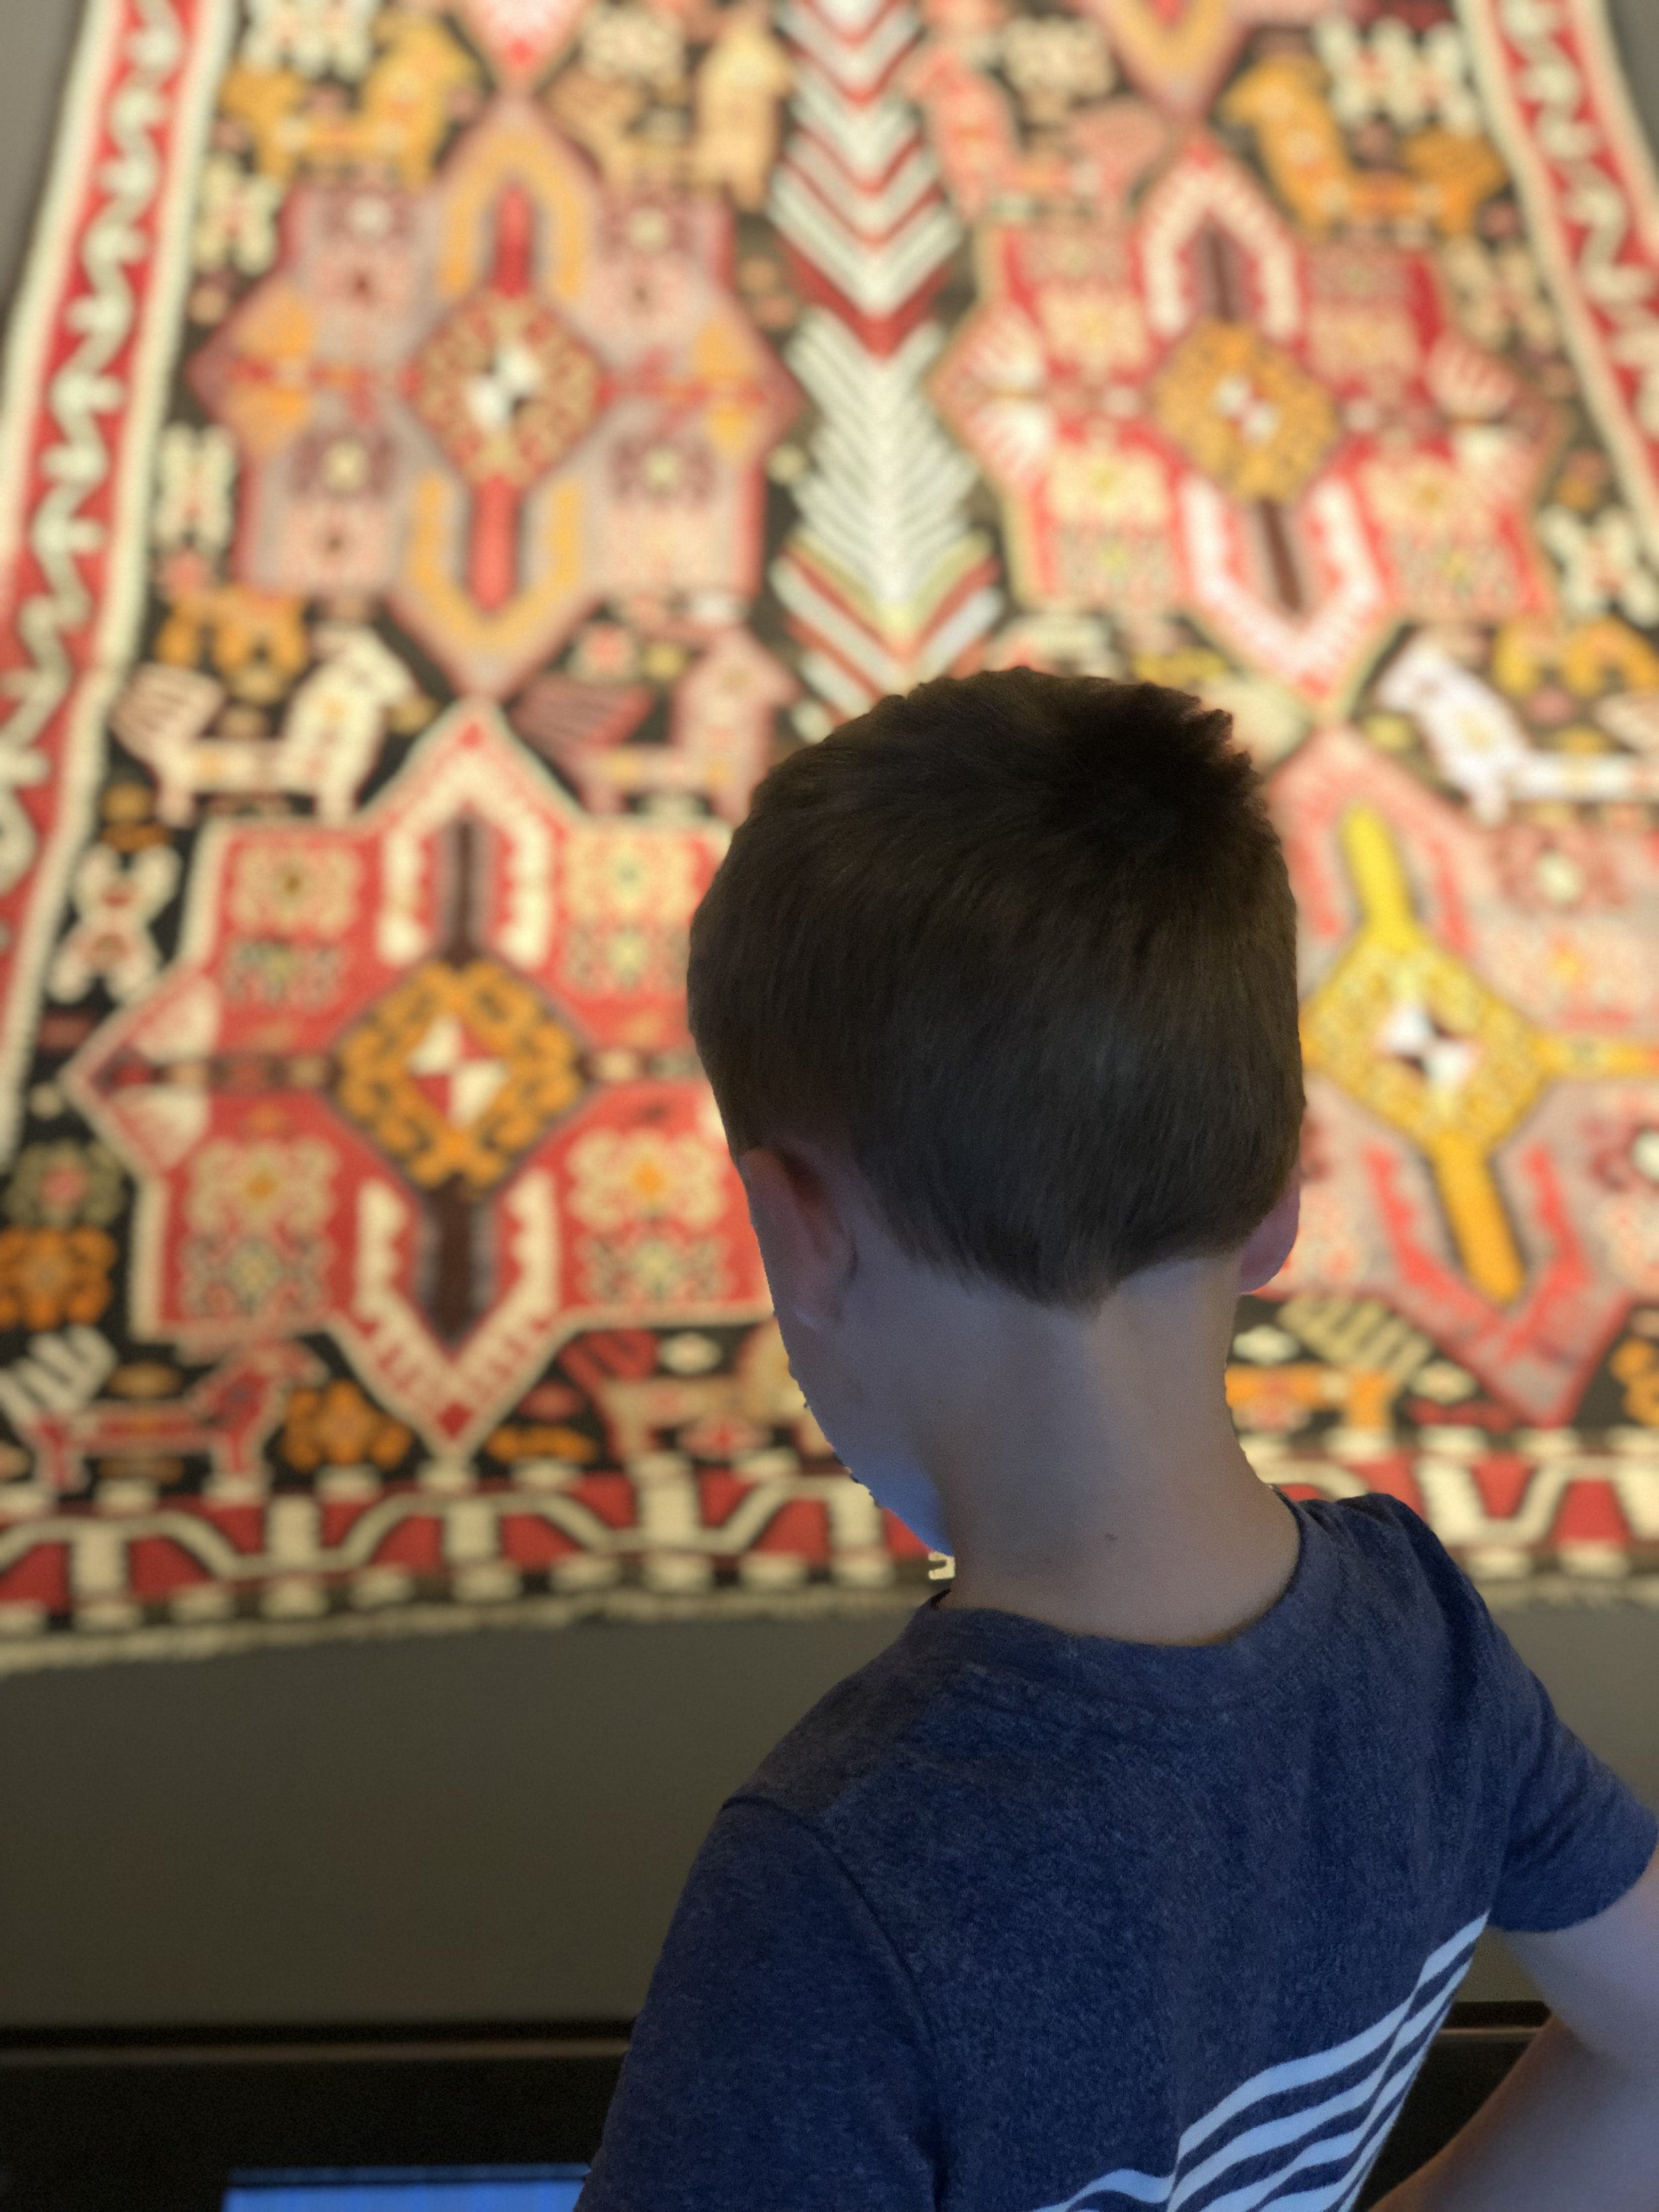 Photo taken behind a little boy who is looking at a giant, colorful Azerbaijani carpet.